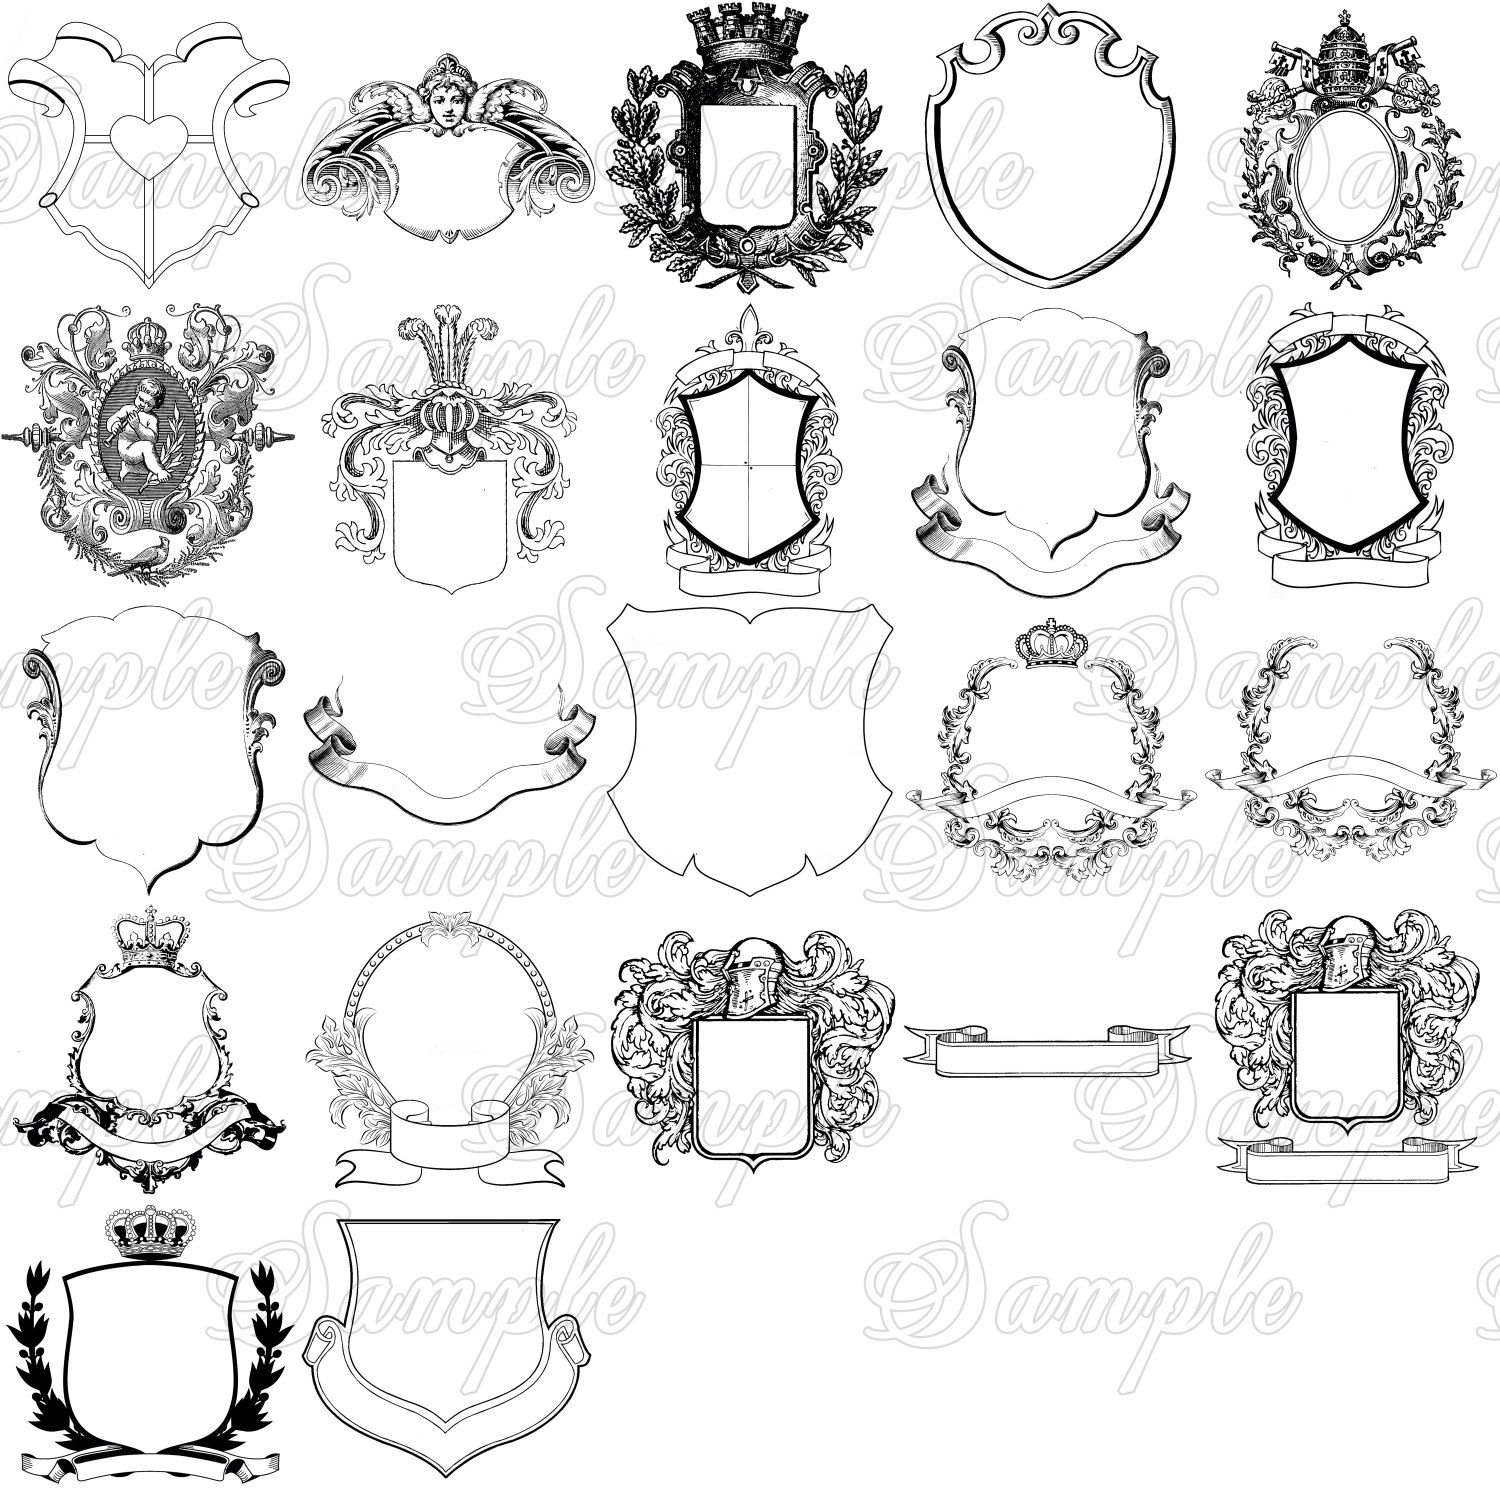 Family Crest, Royal Monogram, Coat of Arms, Royalty Clipart.